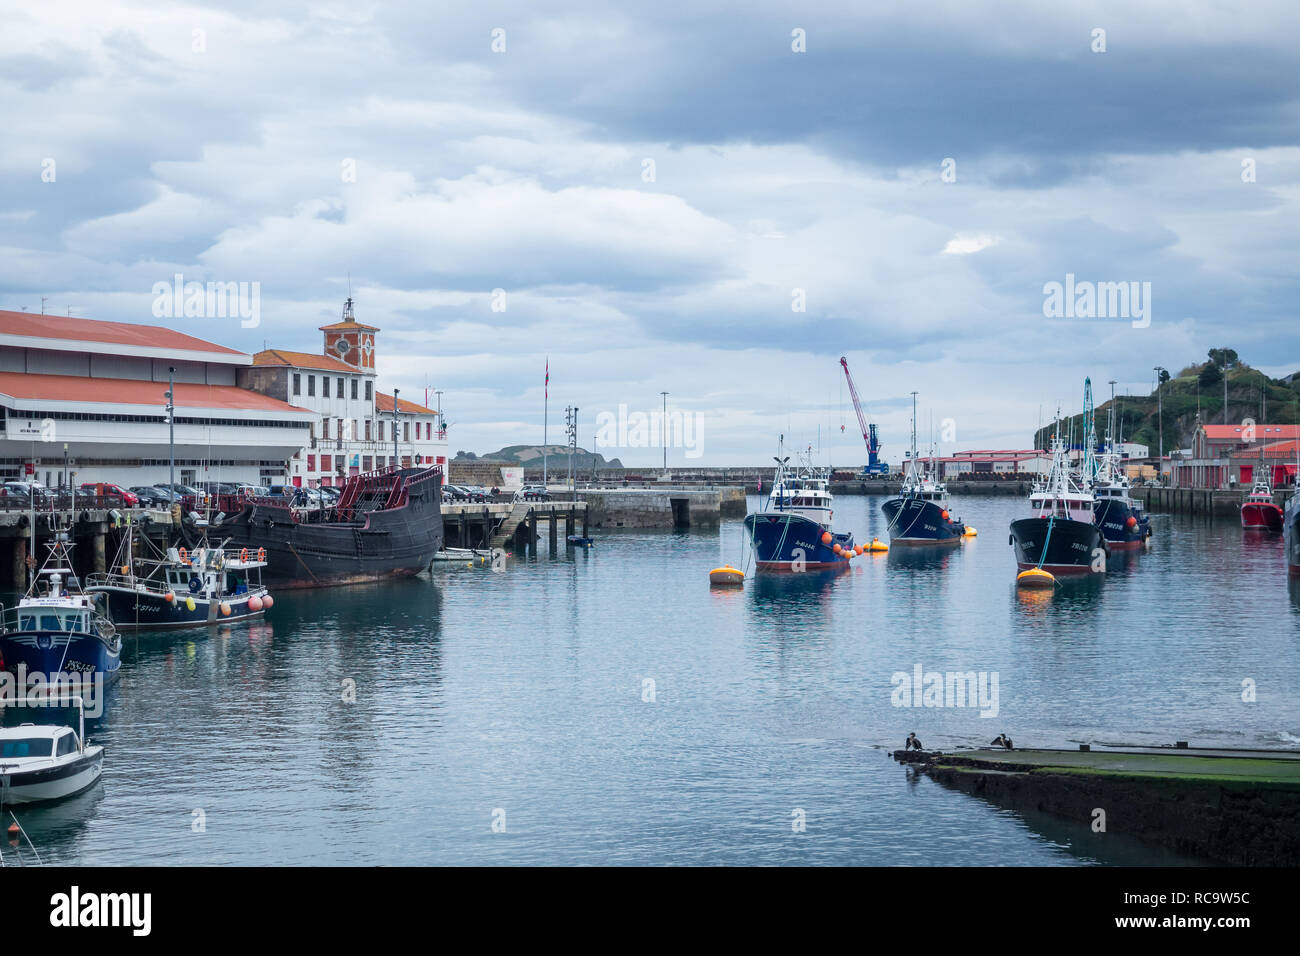 fishing boats in town of Bermeo located at basque country; Spain Euskadi - Stock Image